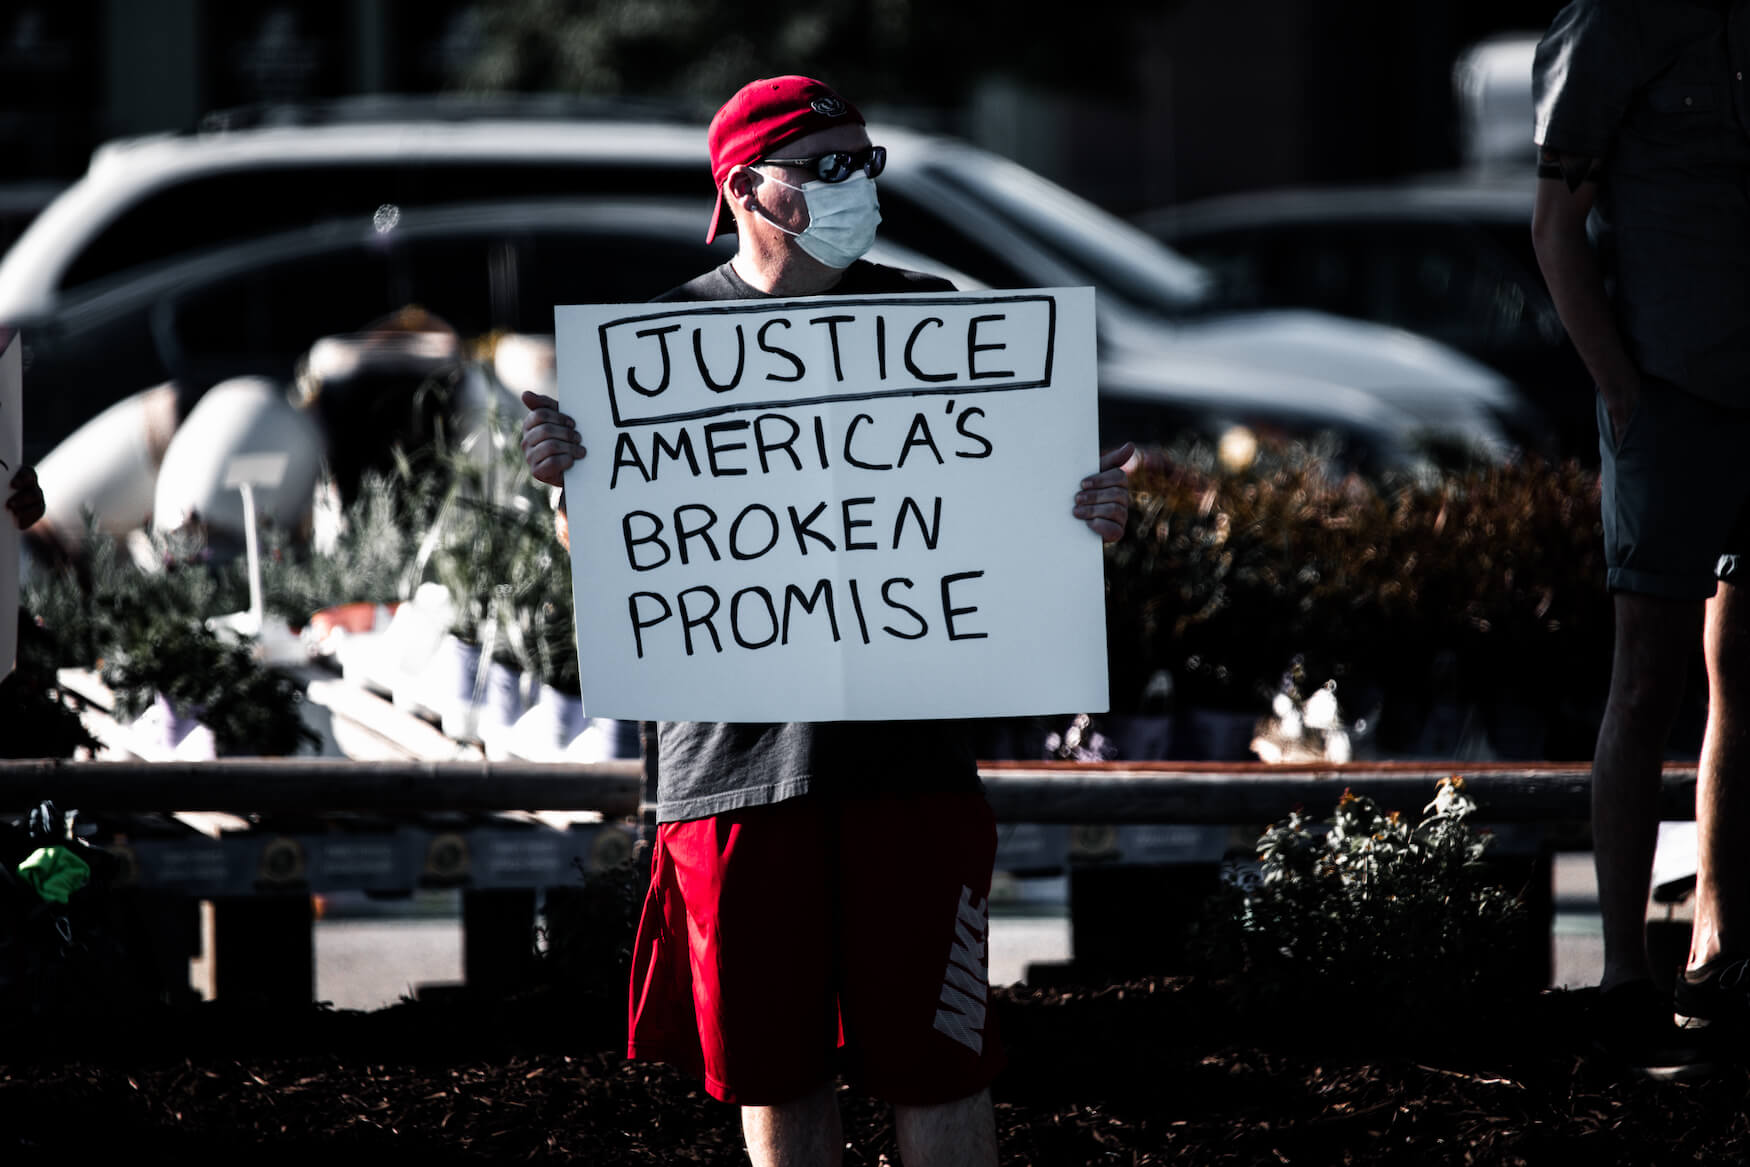 """Protester in omaha, nebraska protests the killing of george floyd; sign reads """"justice: america's broken promise"""""""